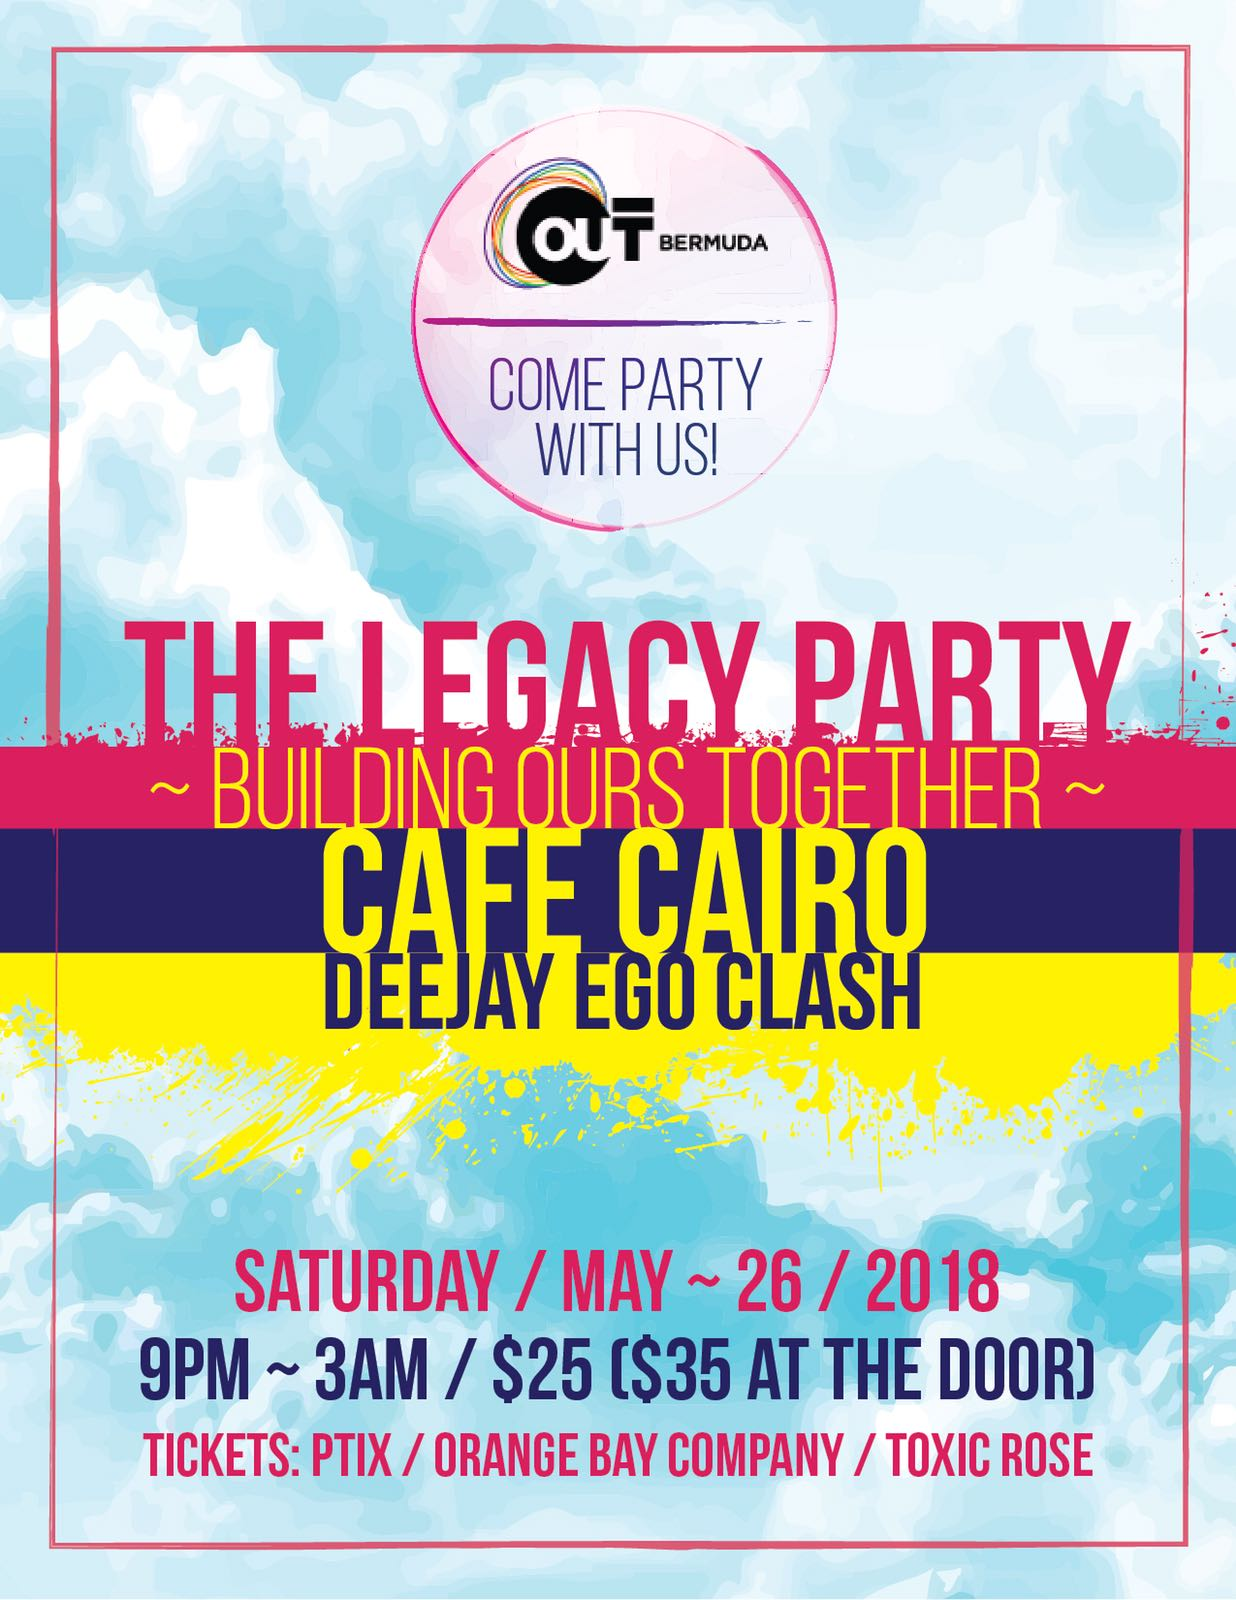 The Legacy Party - Cafe Cairo - DeeJay Ego Clash